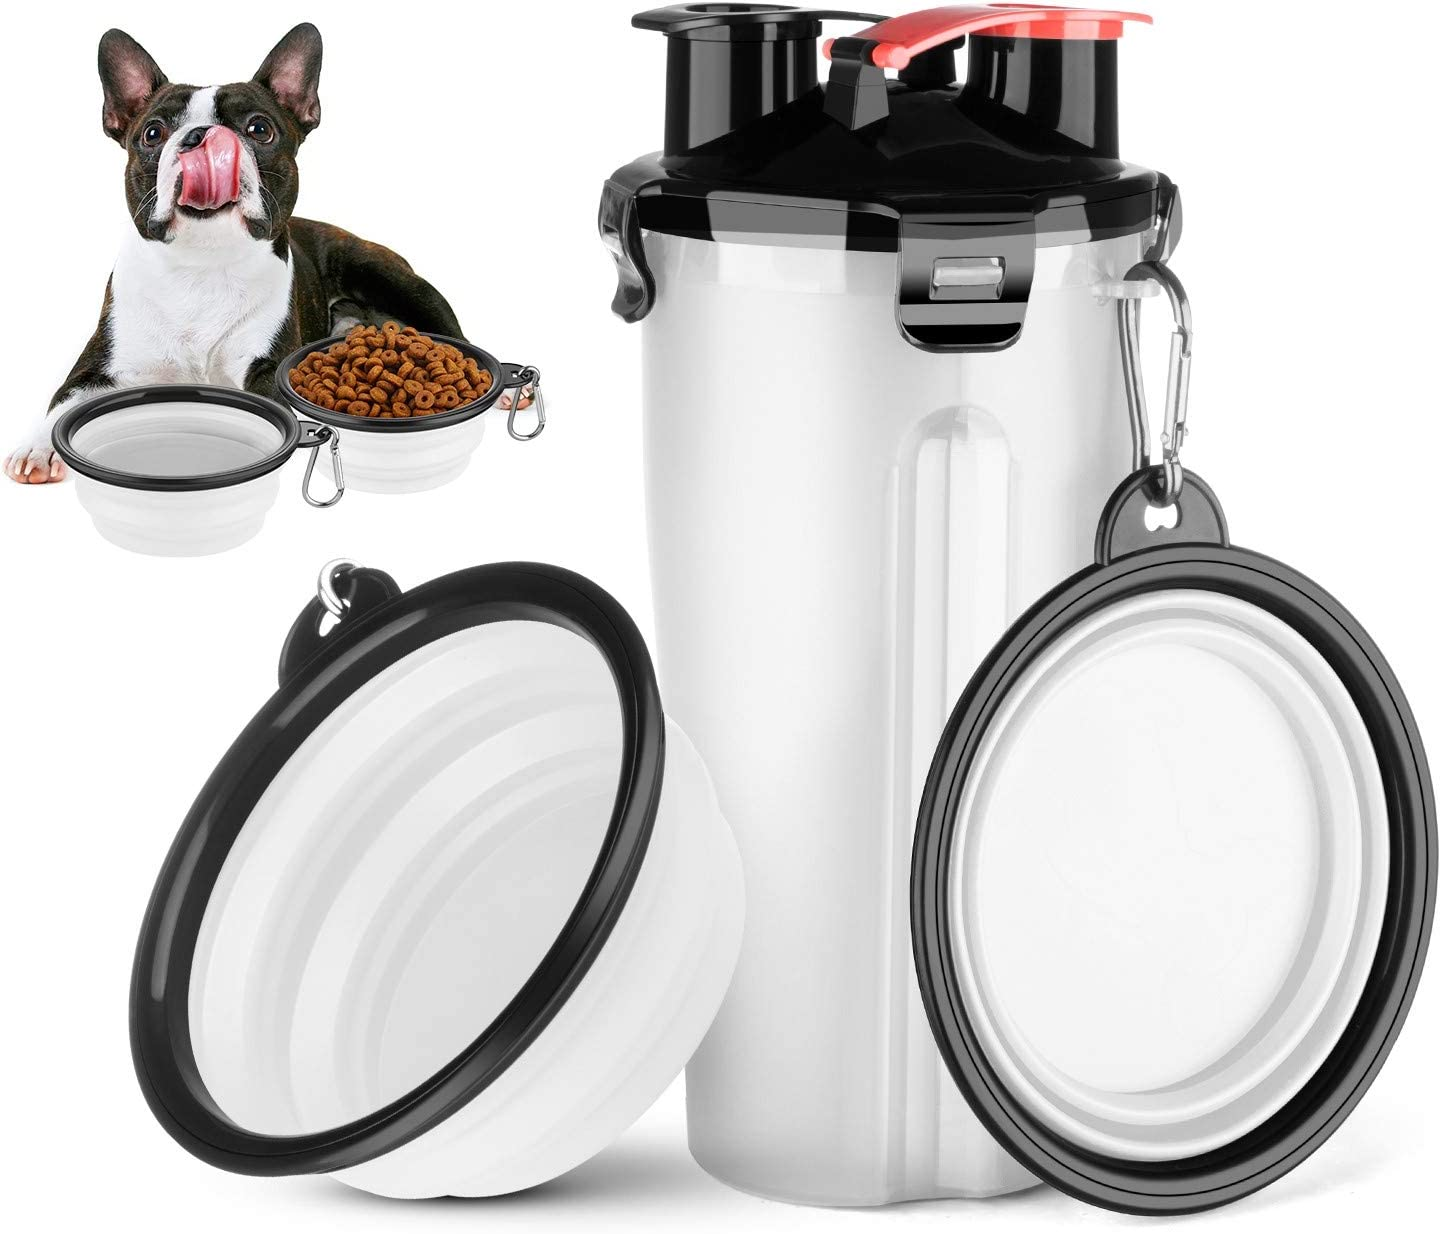 HETH Dog Travel Water Bottle, 2 in 1 Portable Dog Water Dispenser and Food Container with 2 Collapsible Bowls for Your Pets Walking and Traveling